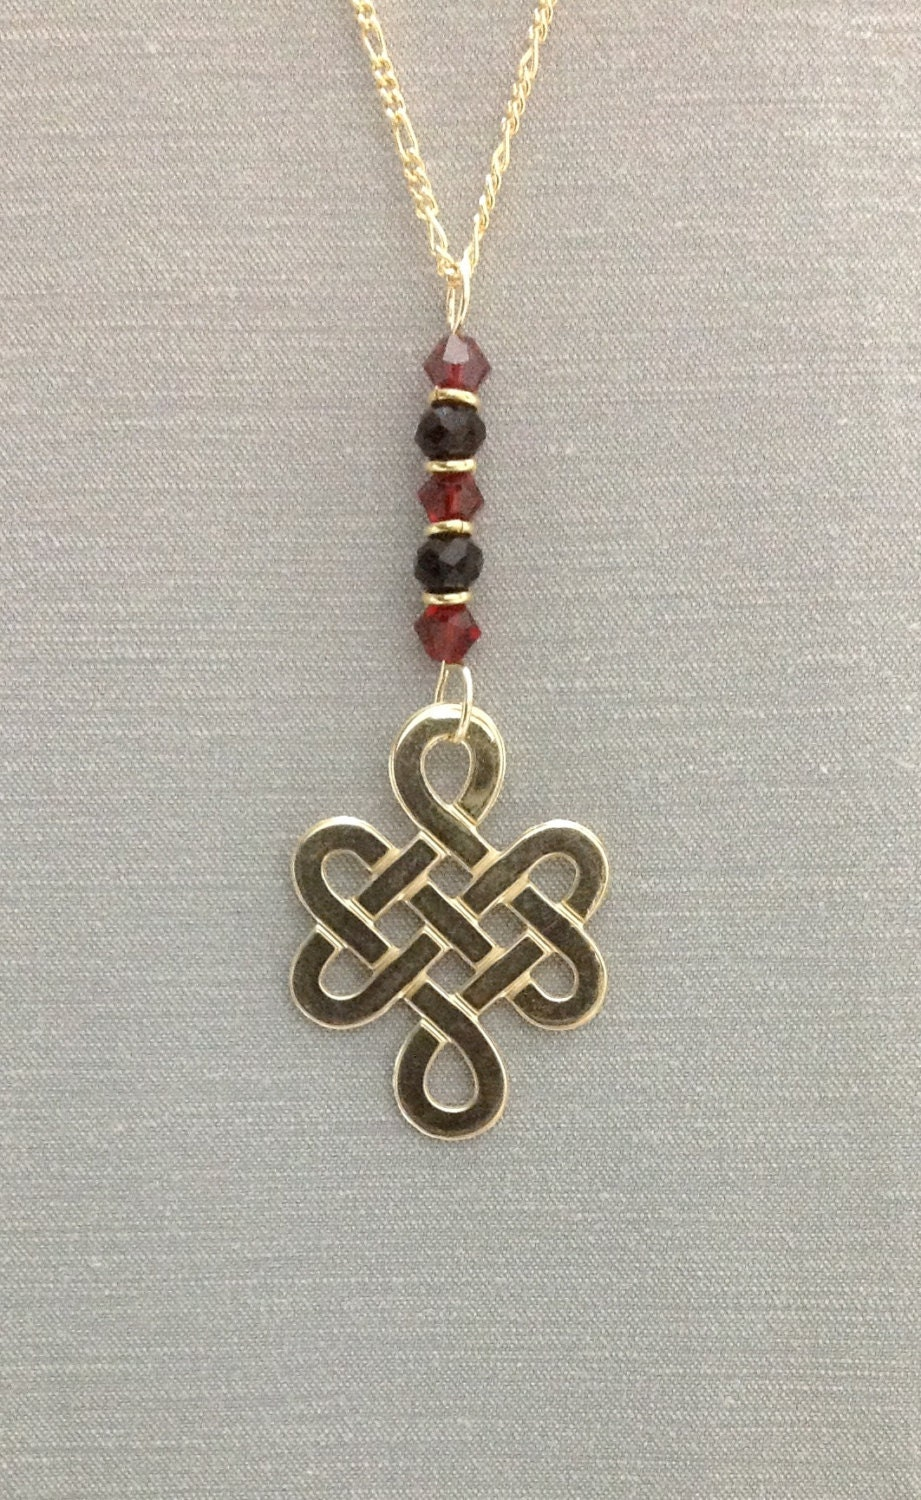 endless knot pendant made of 14k gold filled wire wrapped